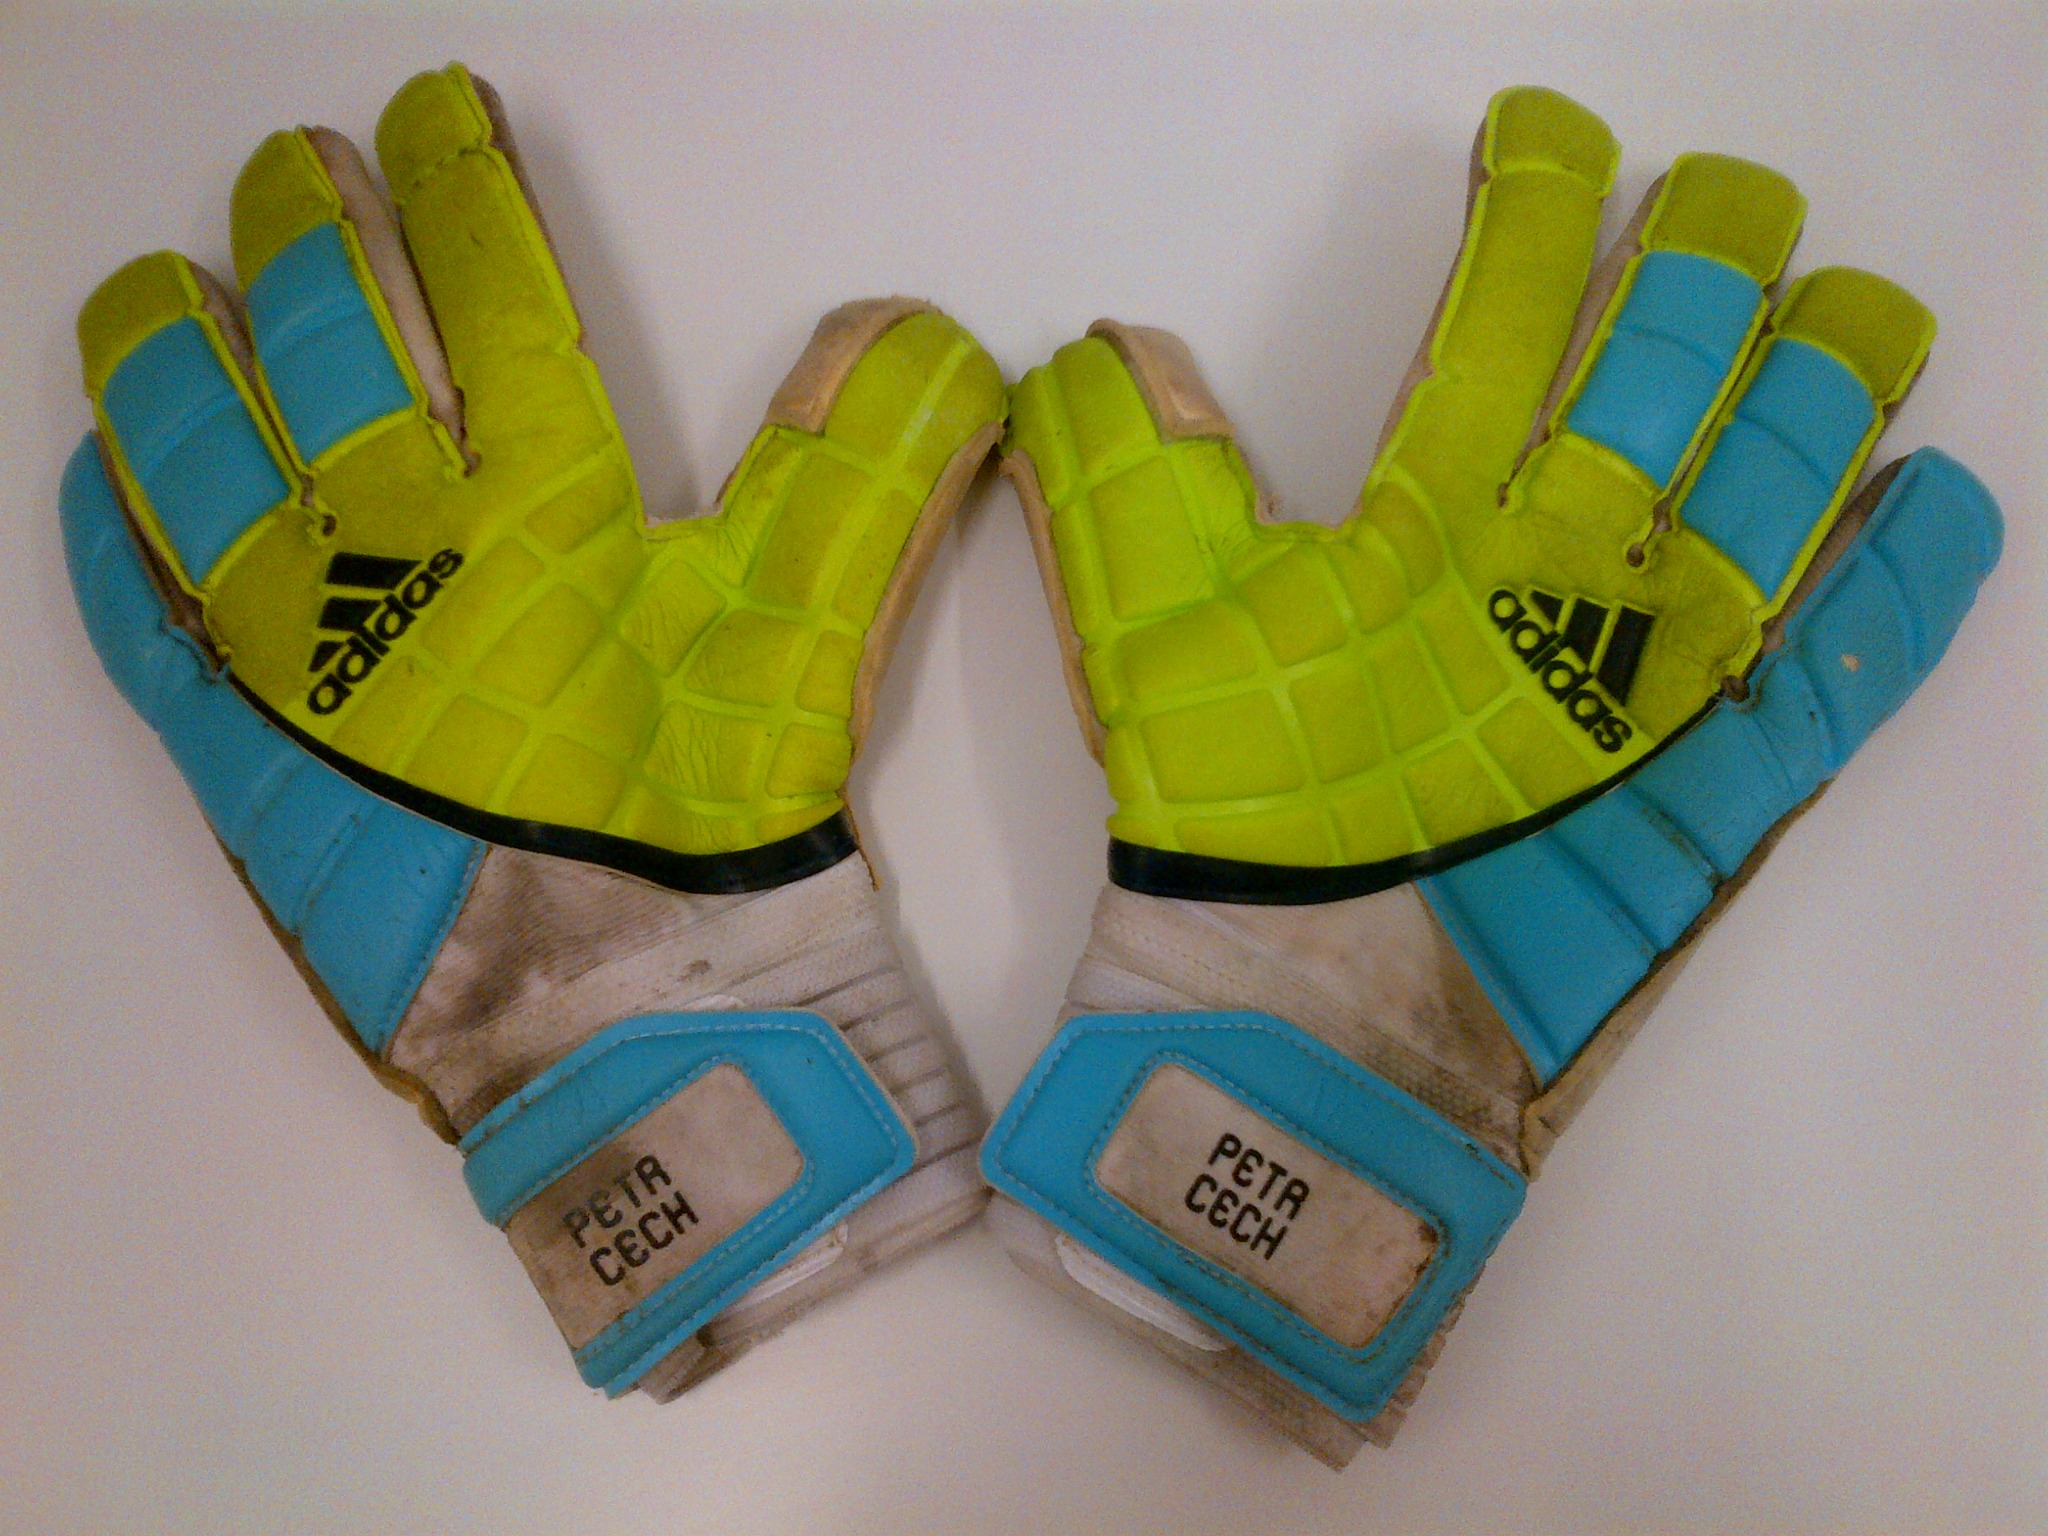 RT @adidasUK: Celebrating #Euro2012 we've got Petr Cech's GLOVES to give away! Follow @adidasuk & RT to enter the comp! #takethestag ...